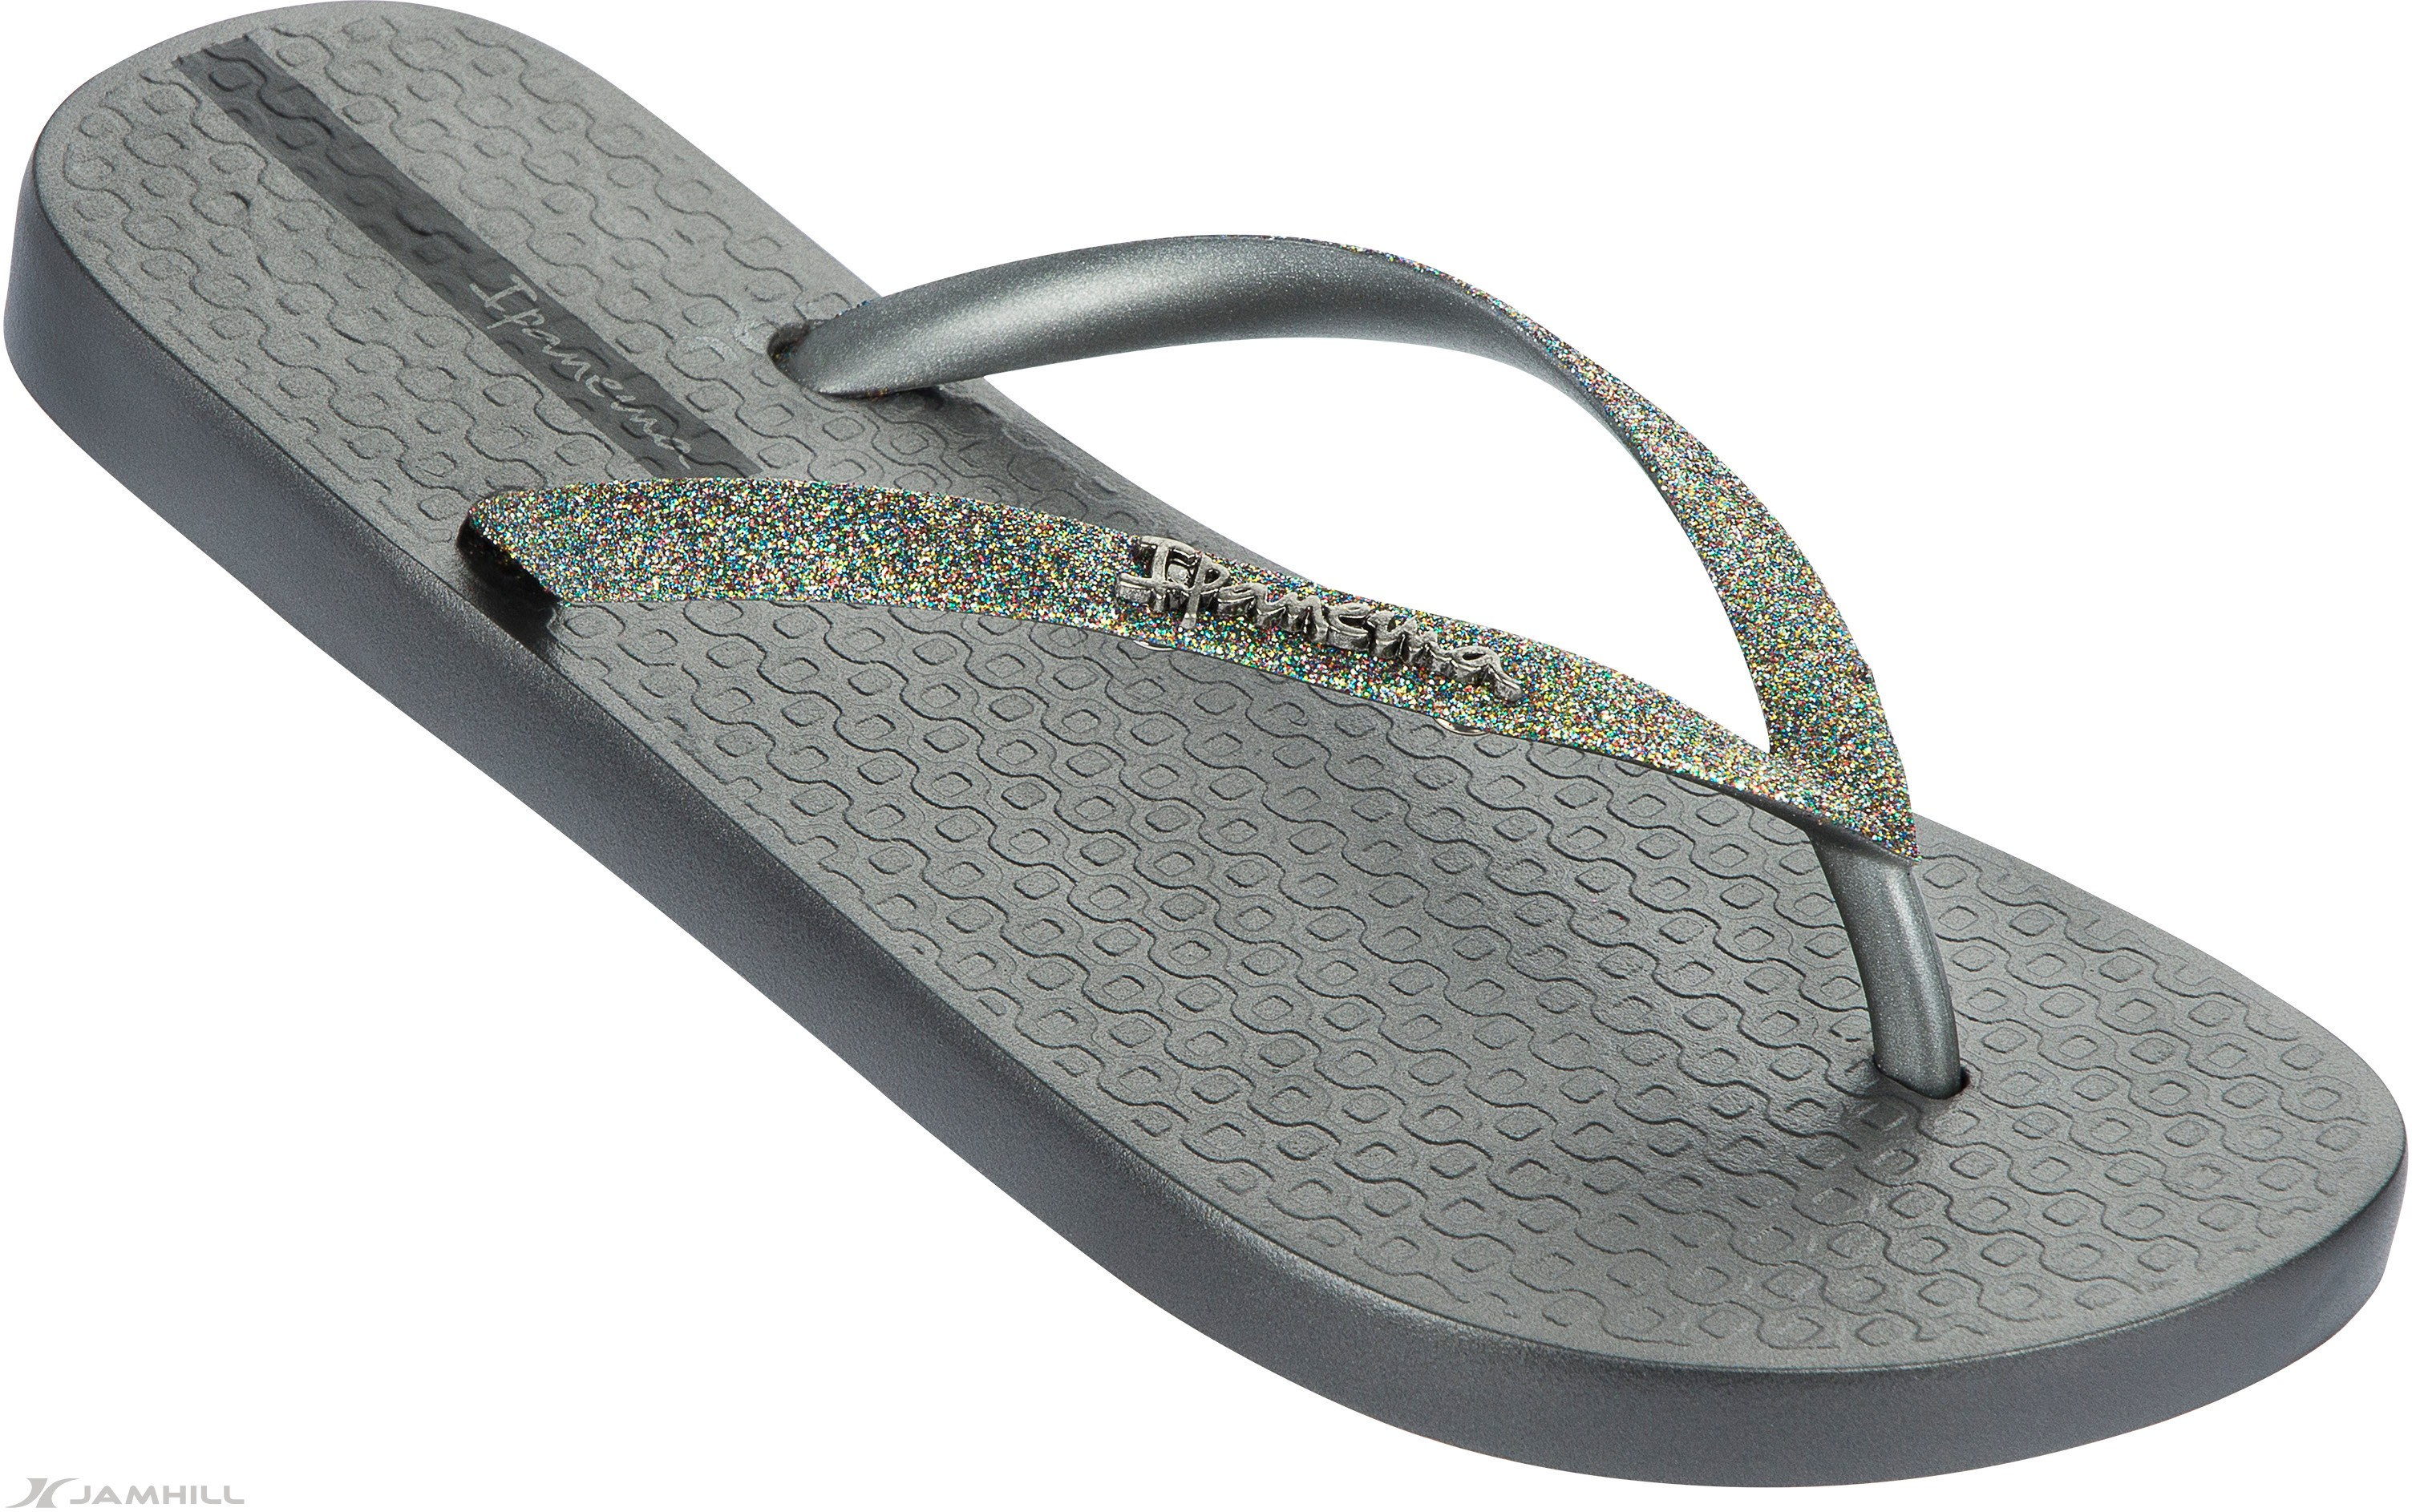 ipanema sparkle womens flip flops with sparkly strap and. Black Bedroom Furniture Sets. Home Design Ideas